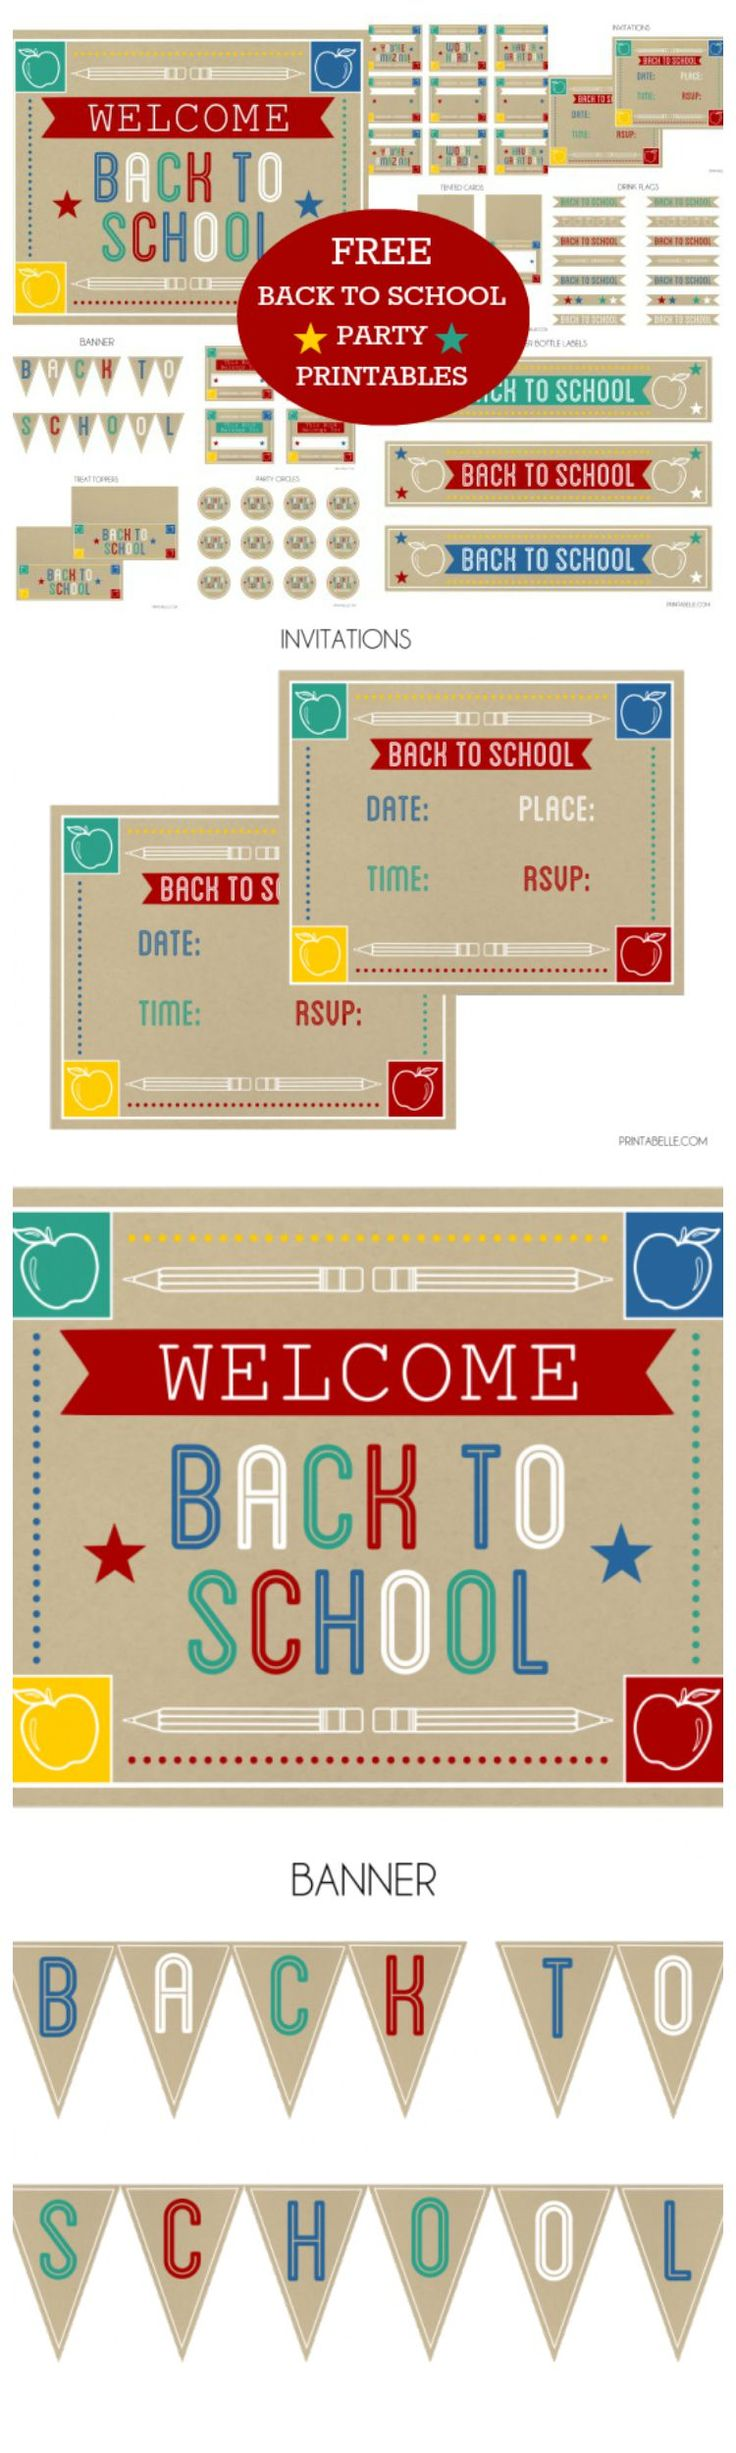 "These are the perfect free printables for throwing a back-to-school party. There are invitations, cupcake toppers, water bottle labels, a ""back to school"" banner, welcome sign, lunch notes, and so much more! See more back-to-school party ideas at CatchMyParty.com."